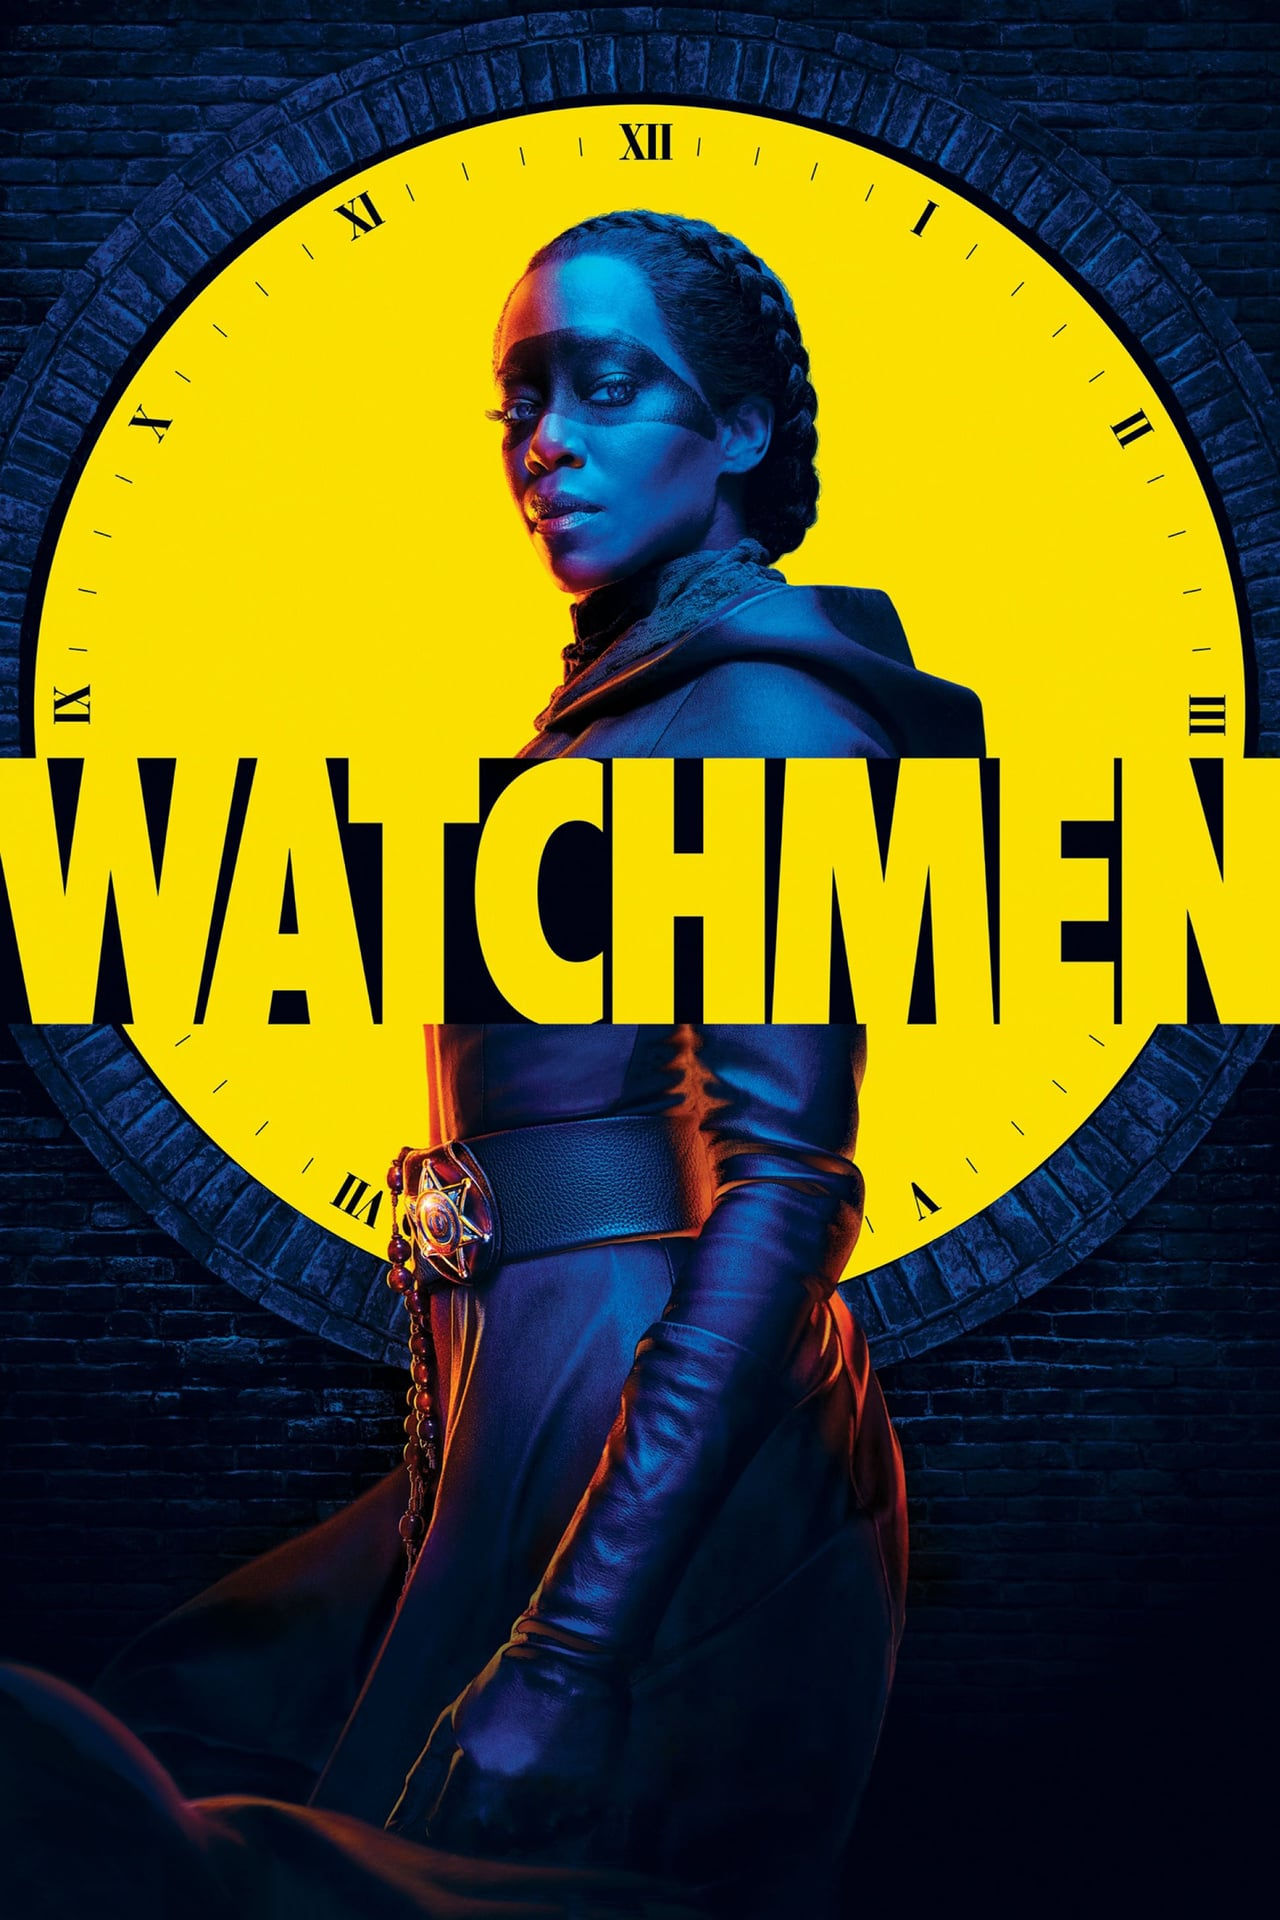 Watchmen.S01E09.FiNAL.FRENCH.720p.BluRay.x264-THiNK